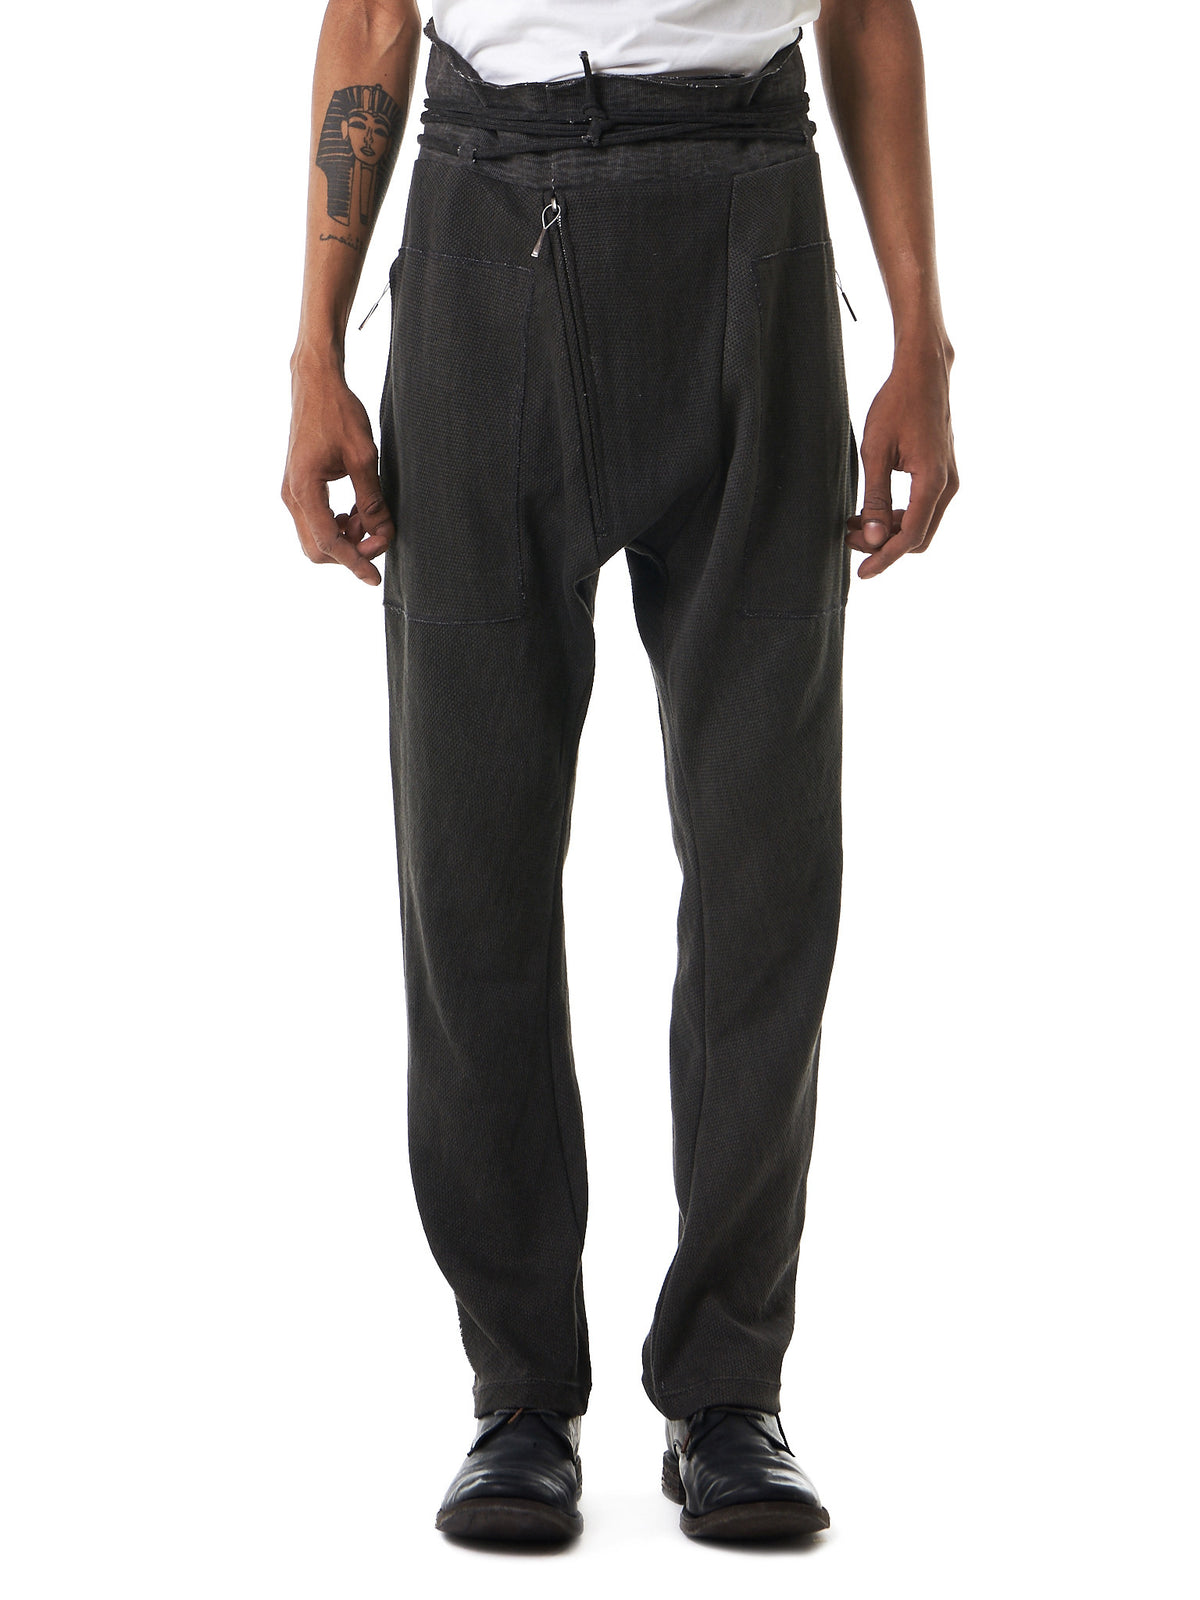 Dropped Front Rise Trousers (SWEATPANTS-CARBON) - H. Lorenzo